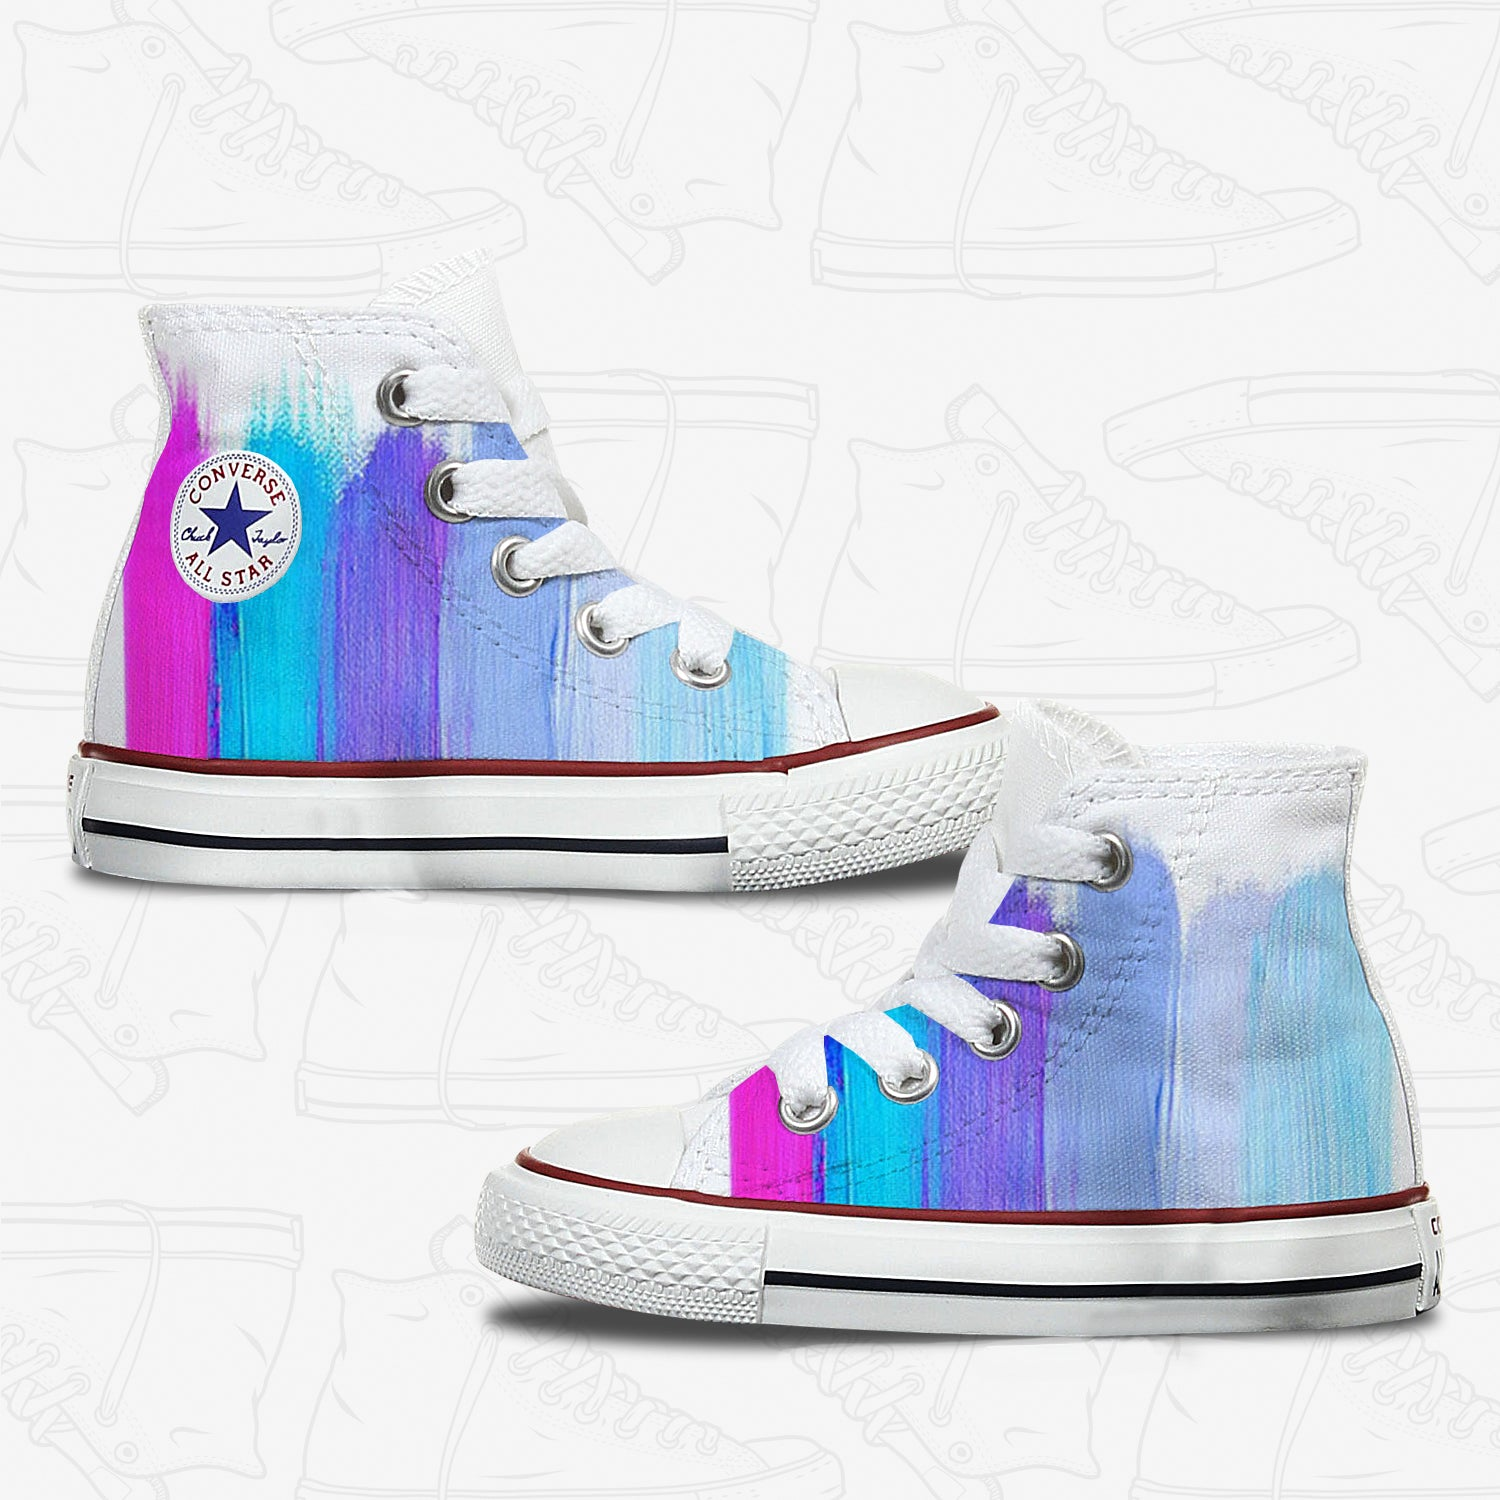 89f19f6a660f77 Converse Custom Painting Kids Shoes